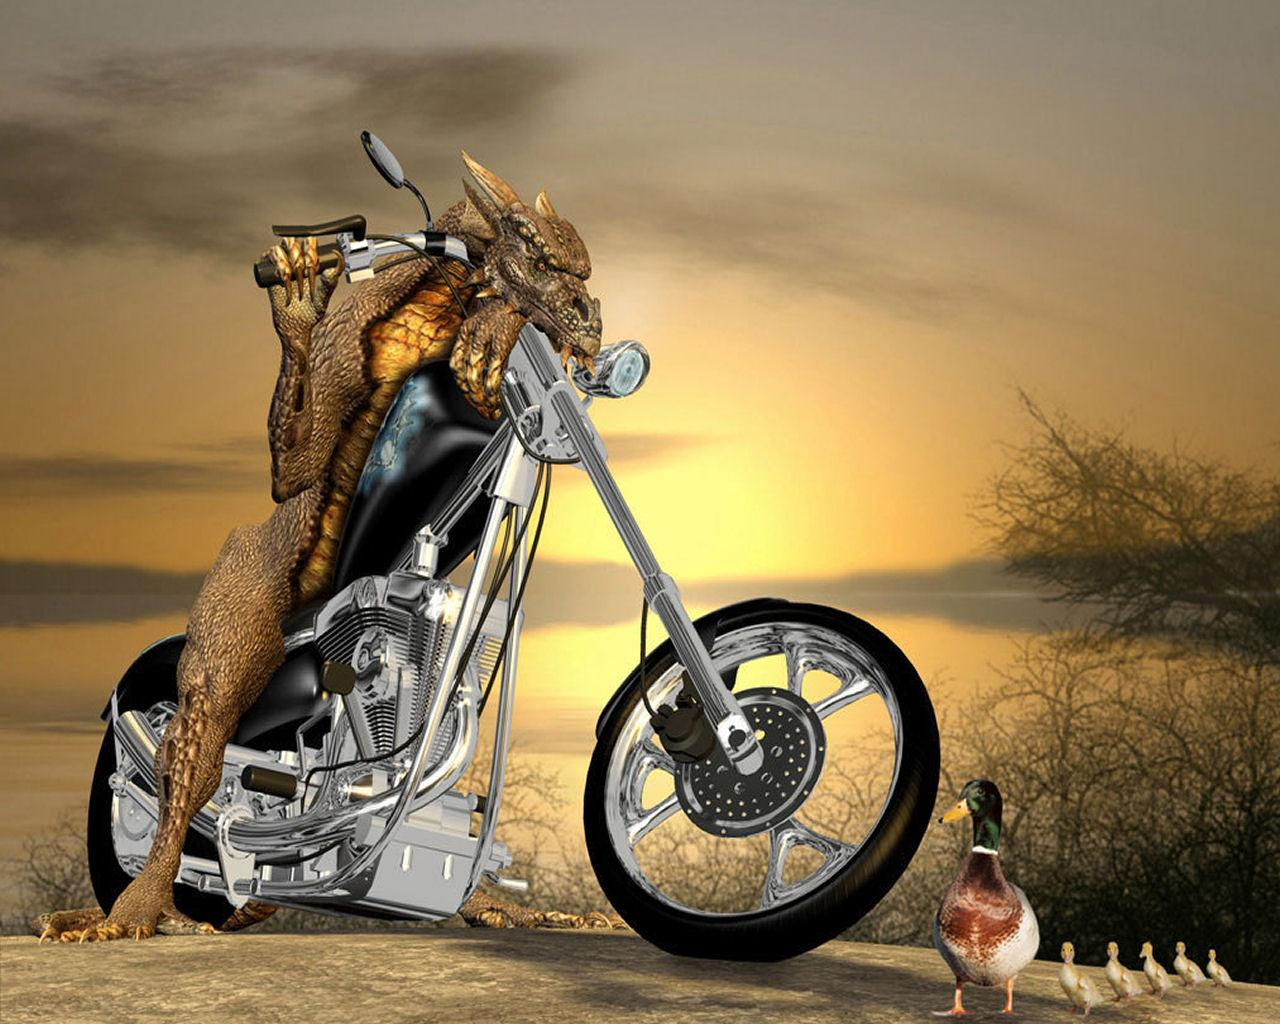 New Wallpapers Collection | Desktop Wallpapers | Mobile Wallpapers: Download Funny Wallpapers ...